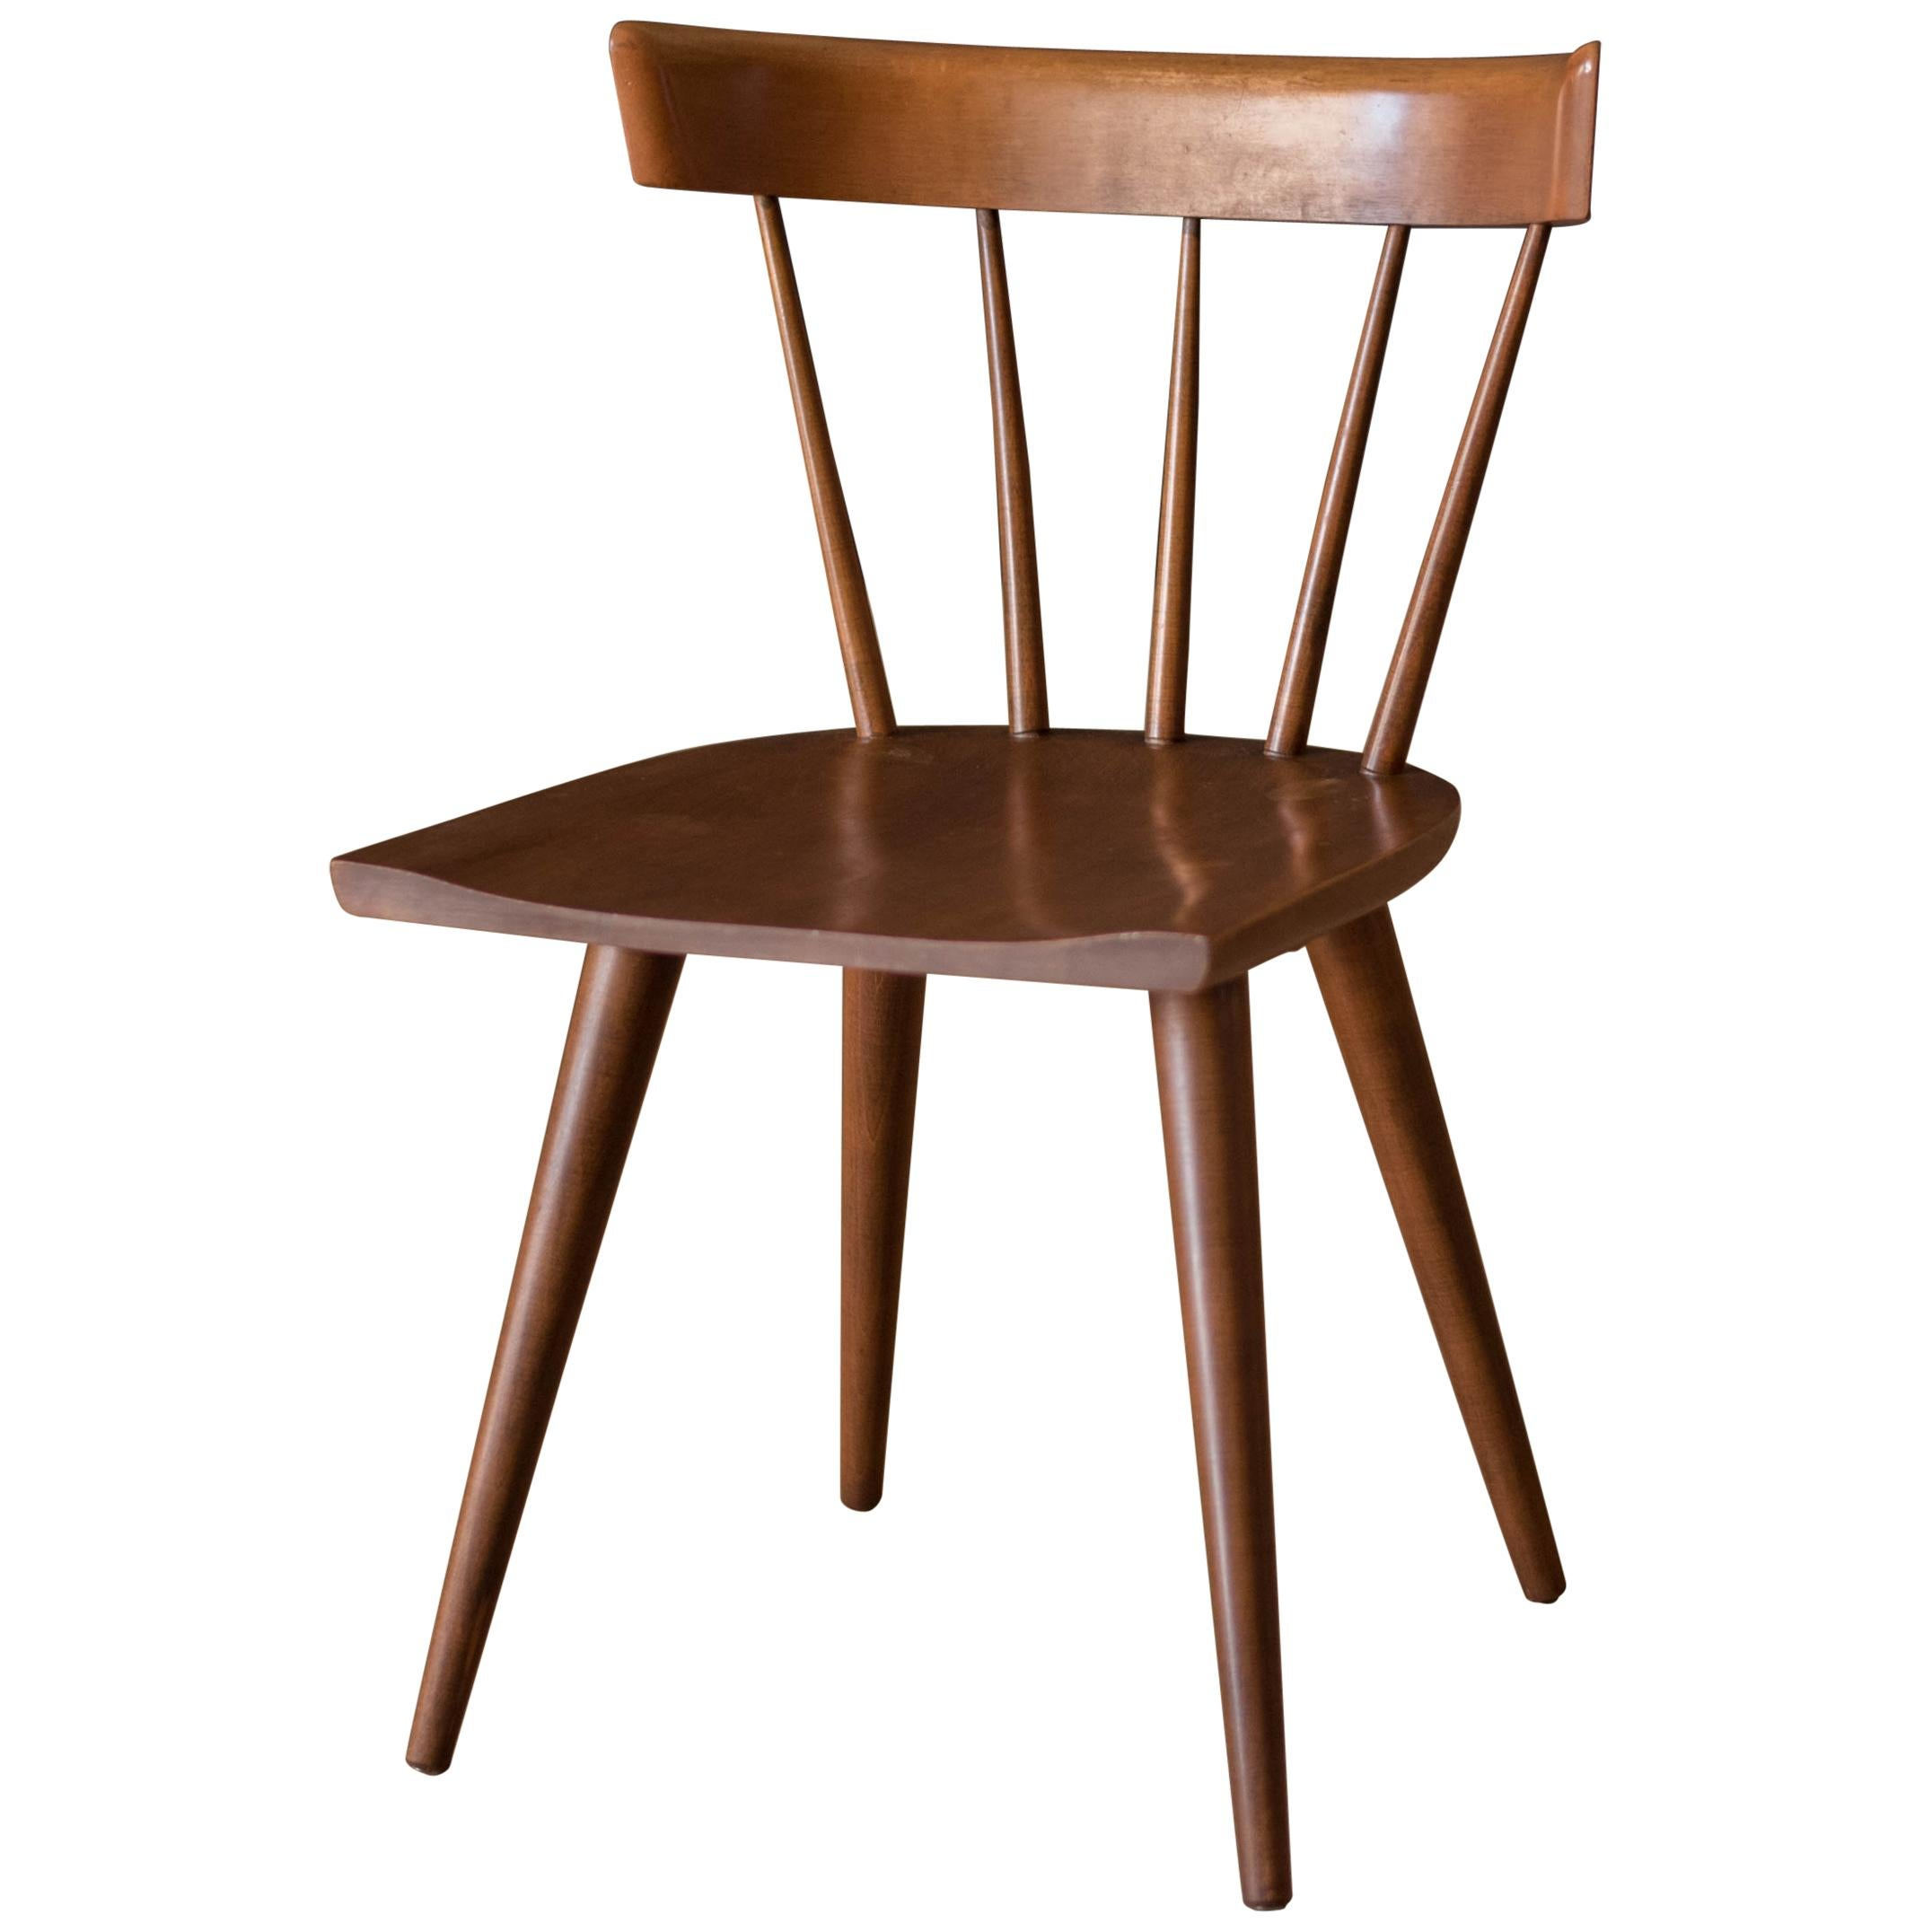 Vintage Paul McCobb Planner Group 1531 Side Chair for Winchendon